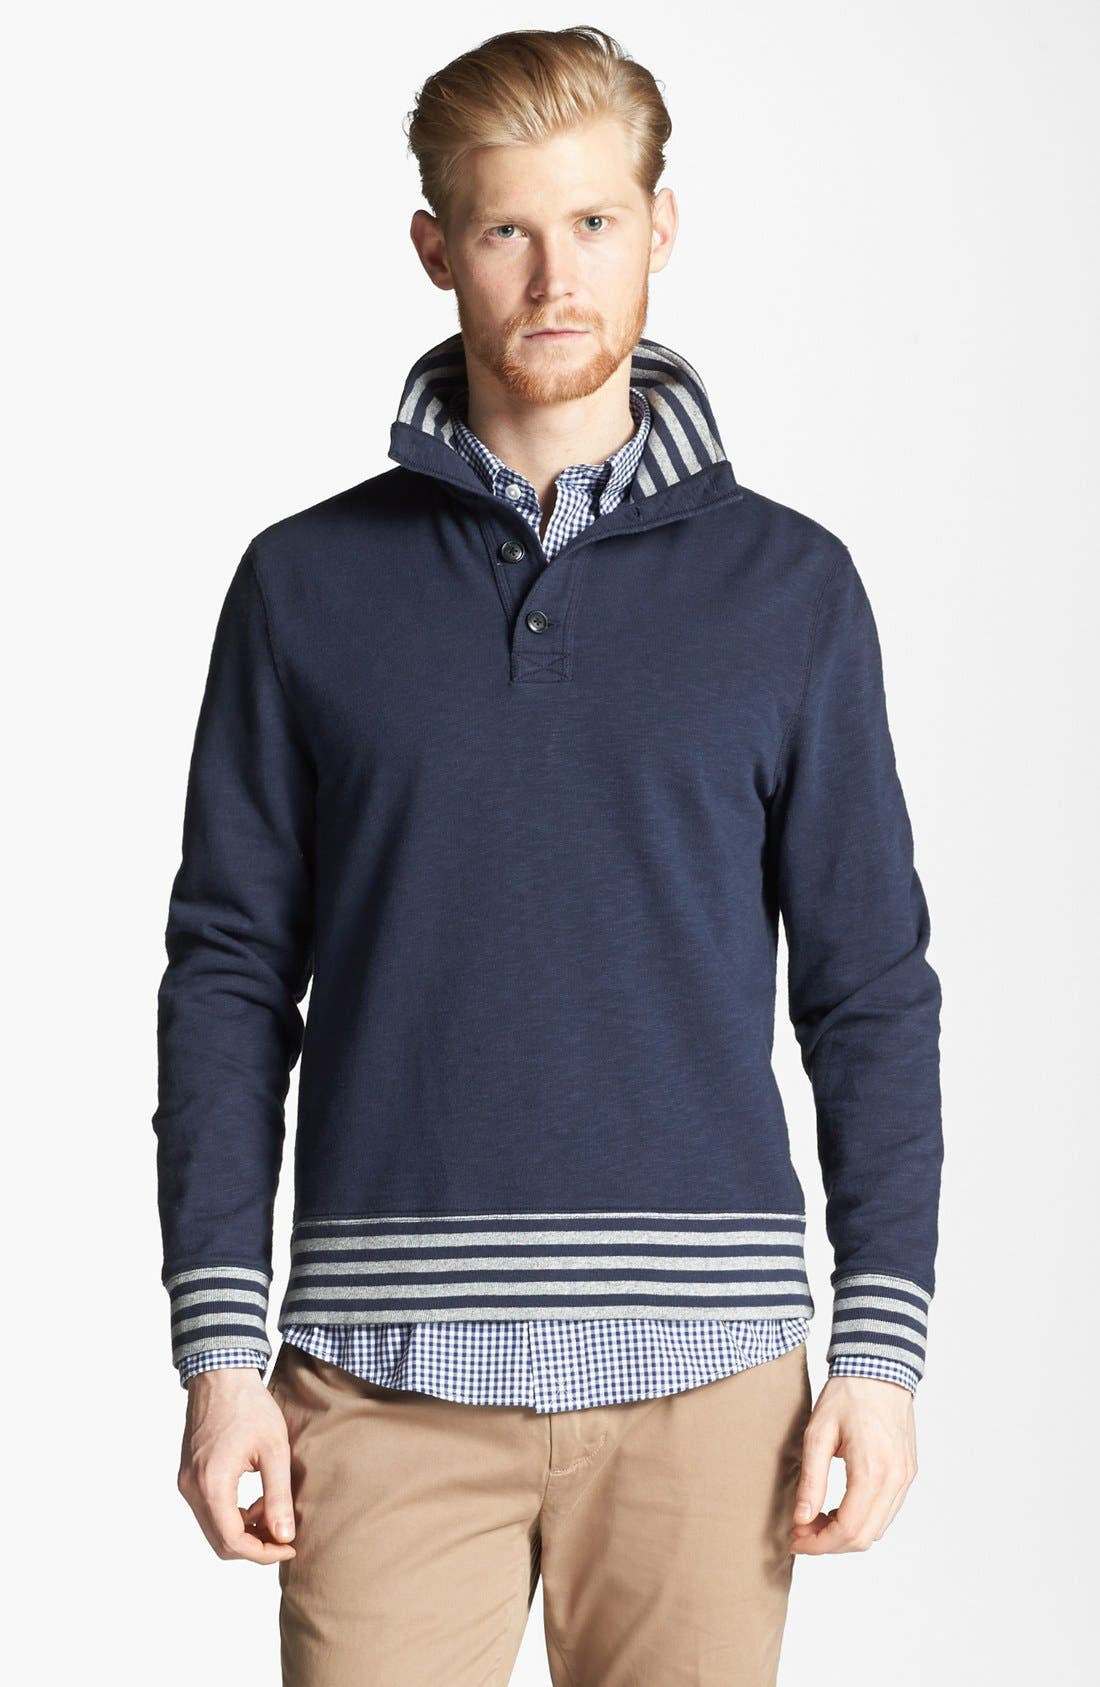 Alternate Image 1 Selected - Jack Spade 'Connors' Pullover Sweatshirt